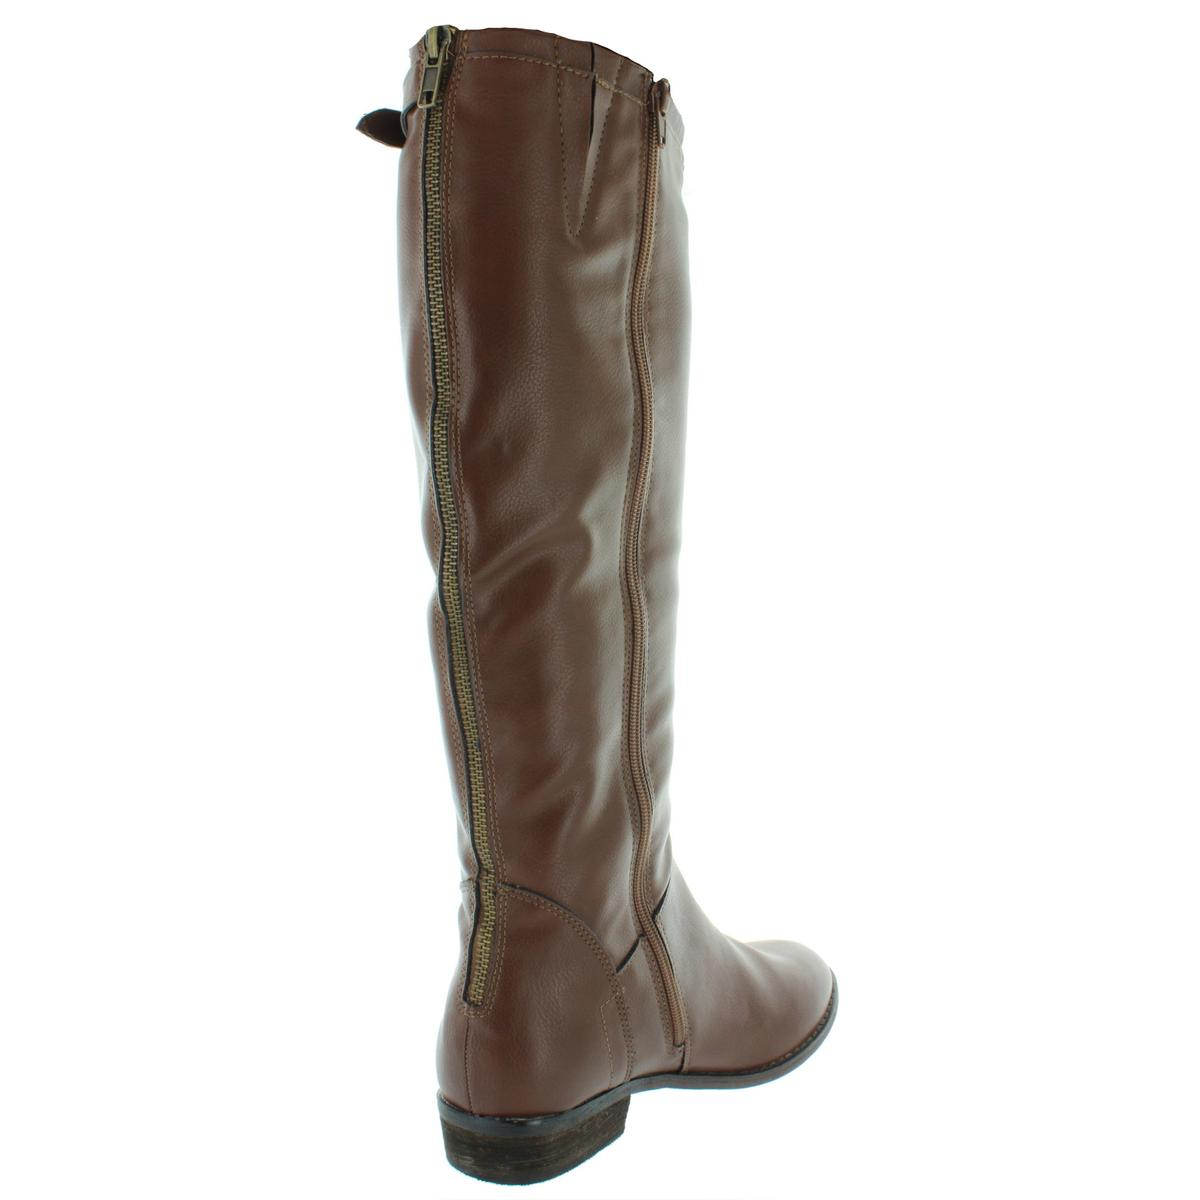 Steve Madden Womens Agnes Faux Leather Dress Knee-High Knee-High Knee-High Boots shoes BHFO 7803 6fe940